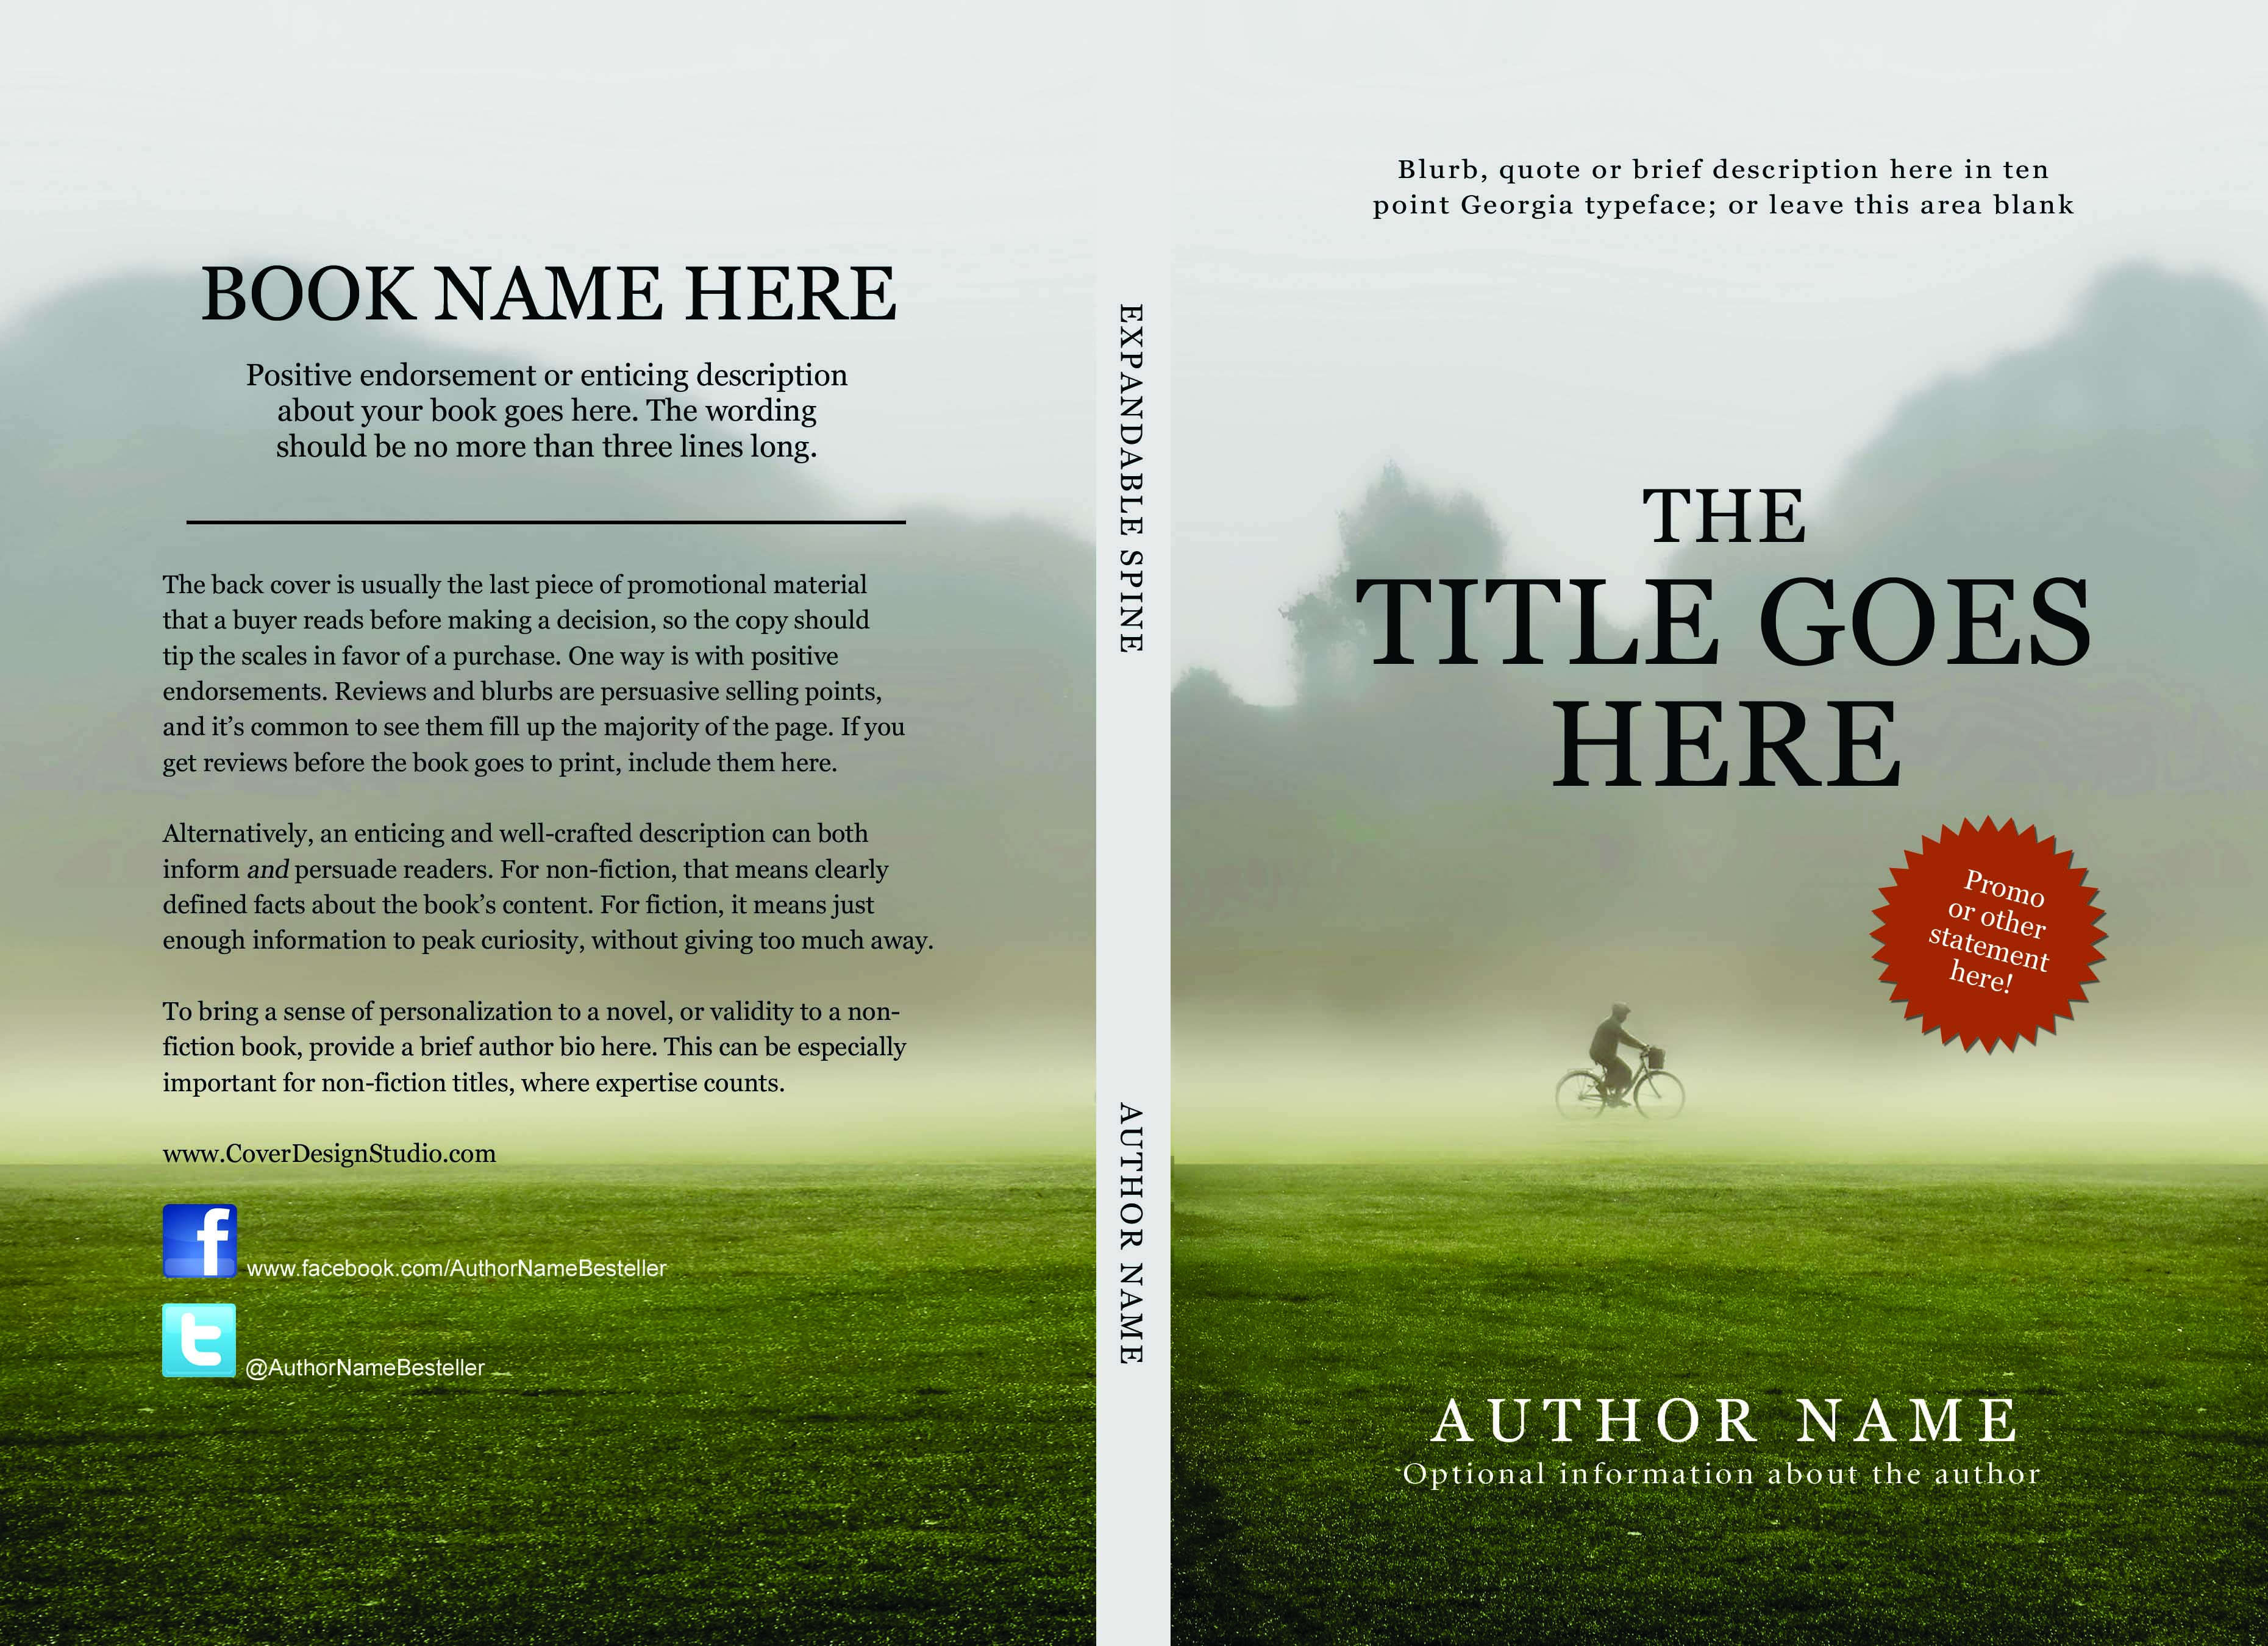 Book Cover Design Tutorial In Photo ~ Createspace and kindle covers made easy cover design studio